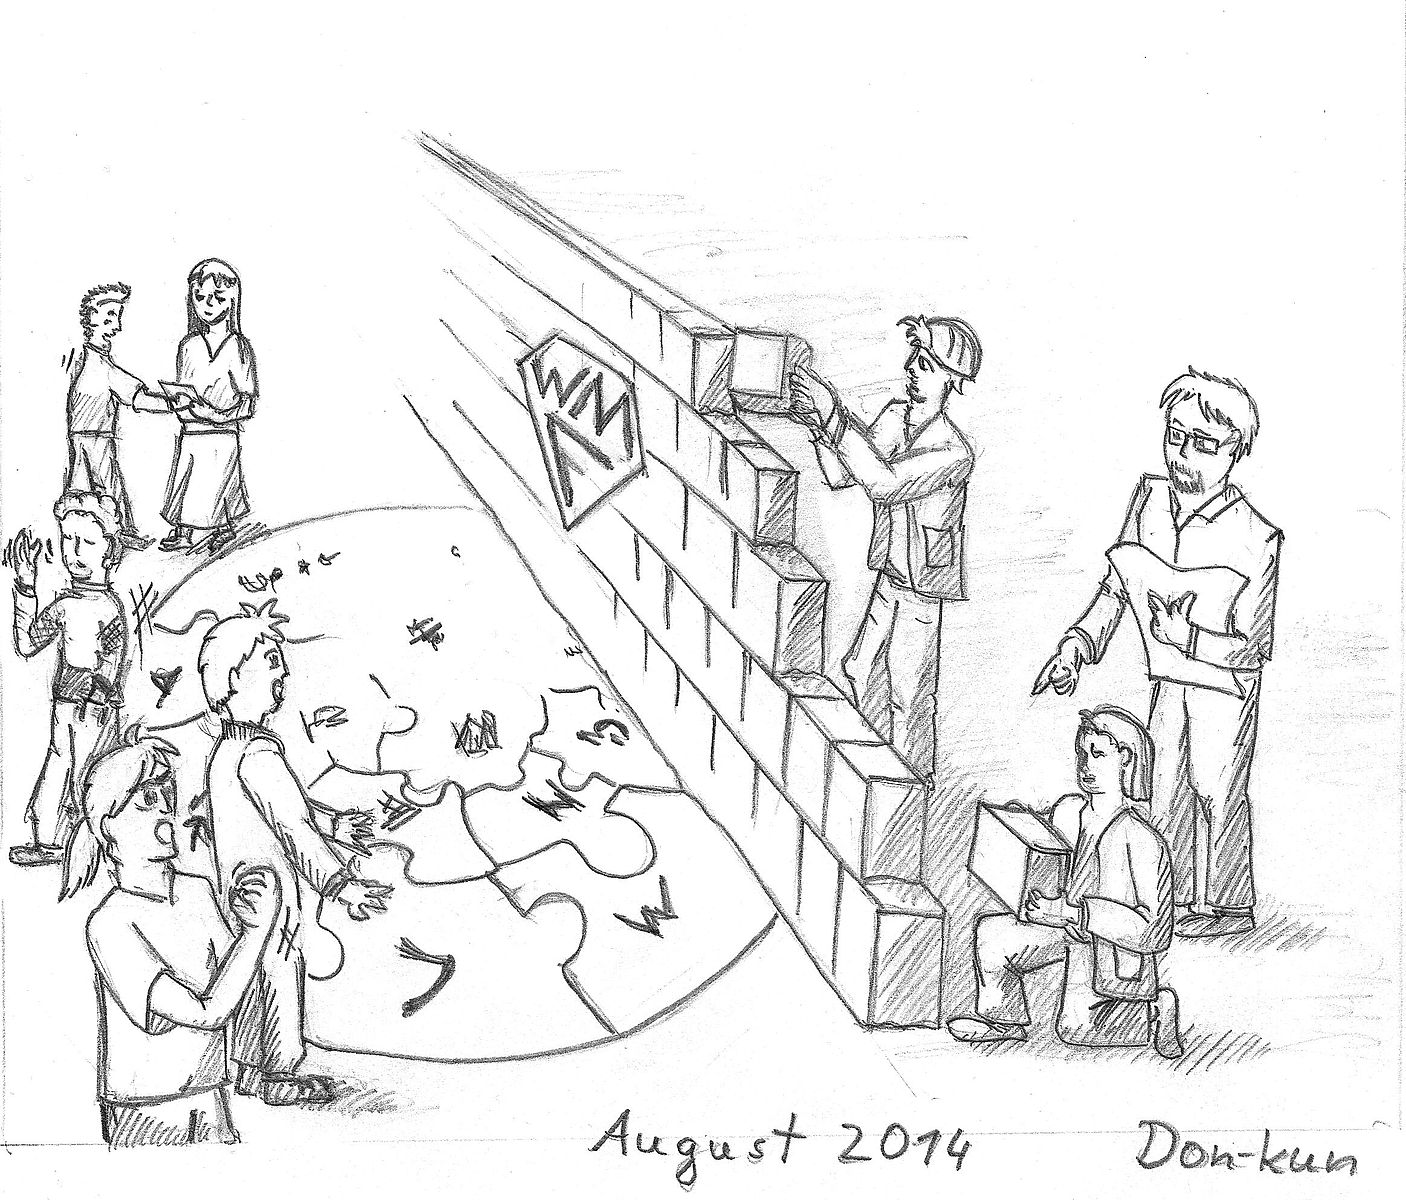 WMF_building_wiki_wall_in_August_2014_caricature